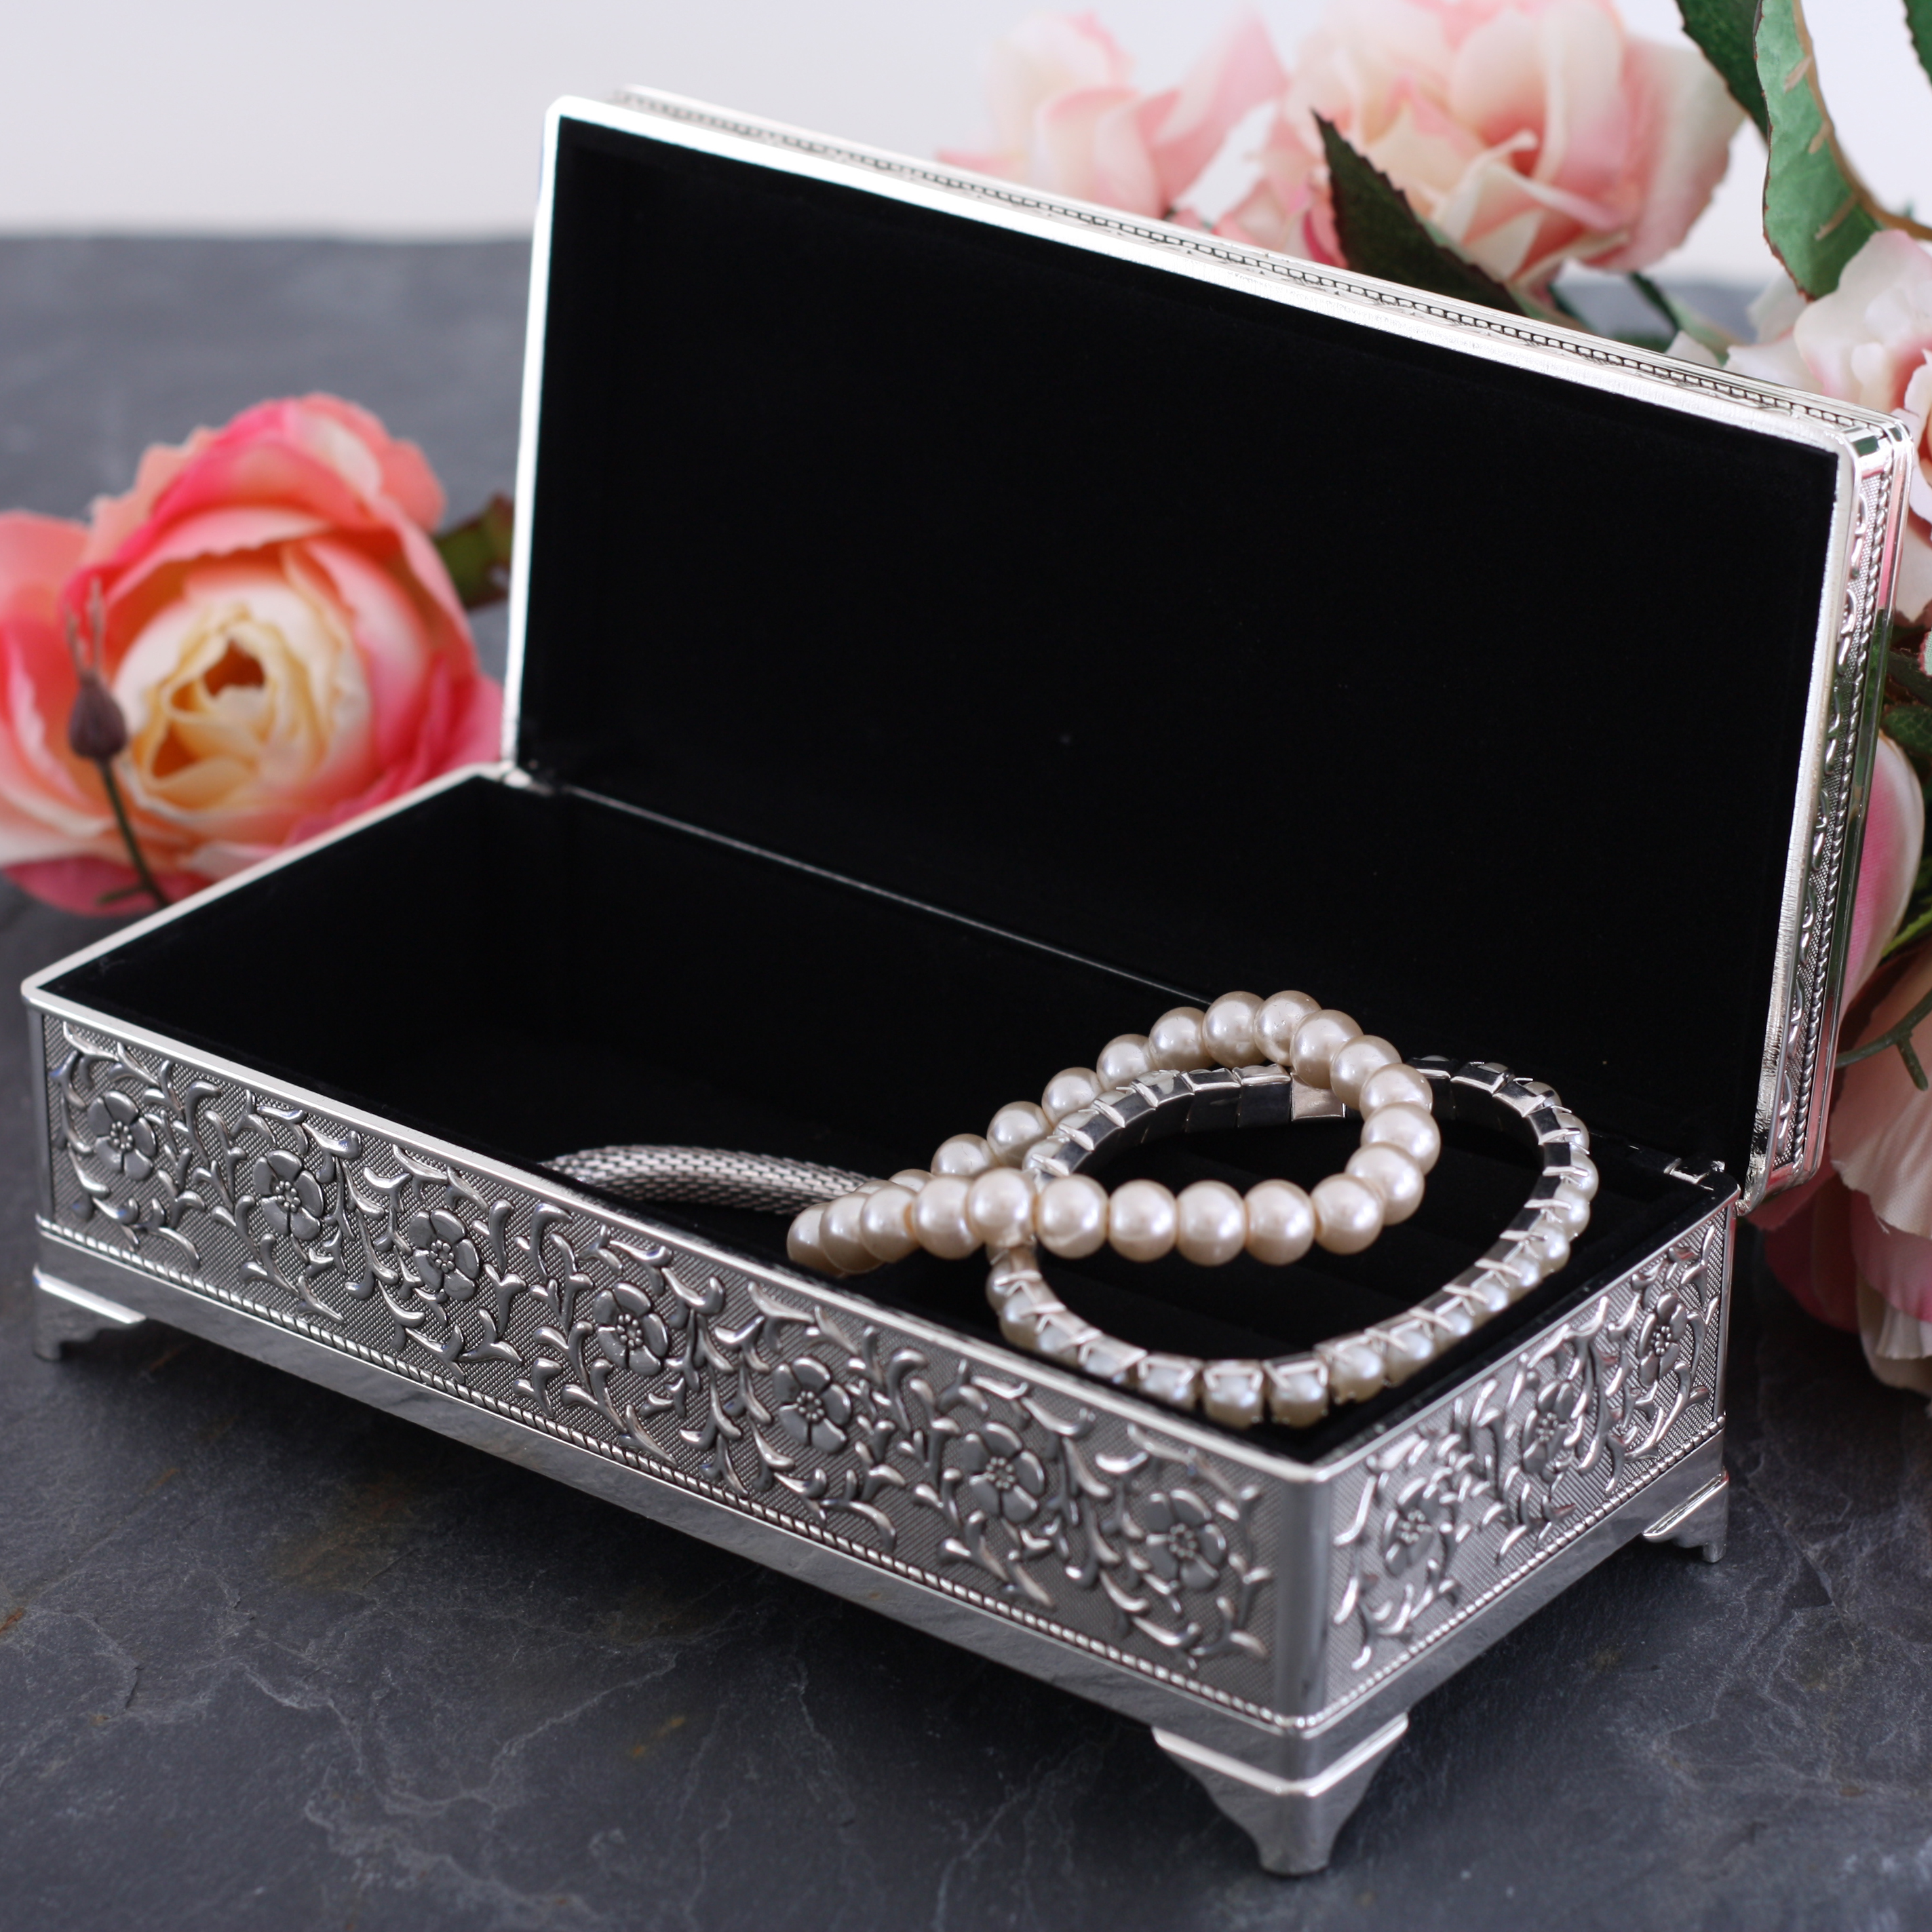 What Gift Can You Give Your Daughter On Her Wedding Day